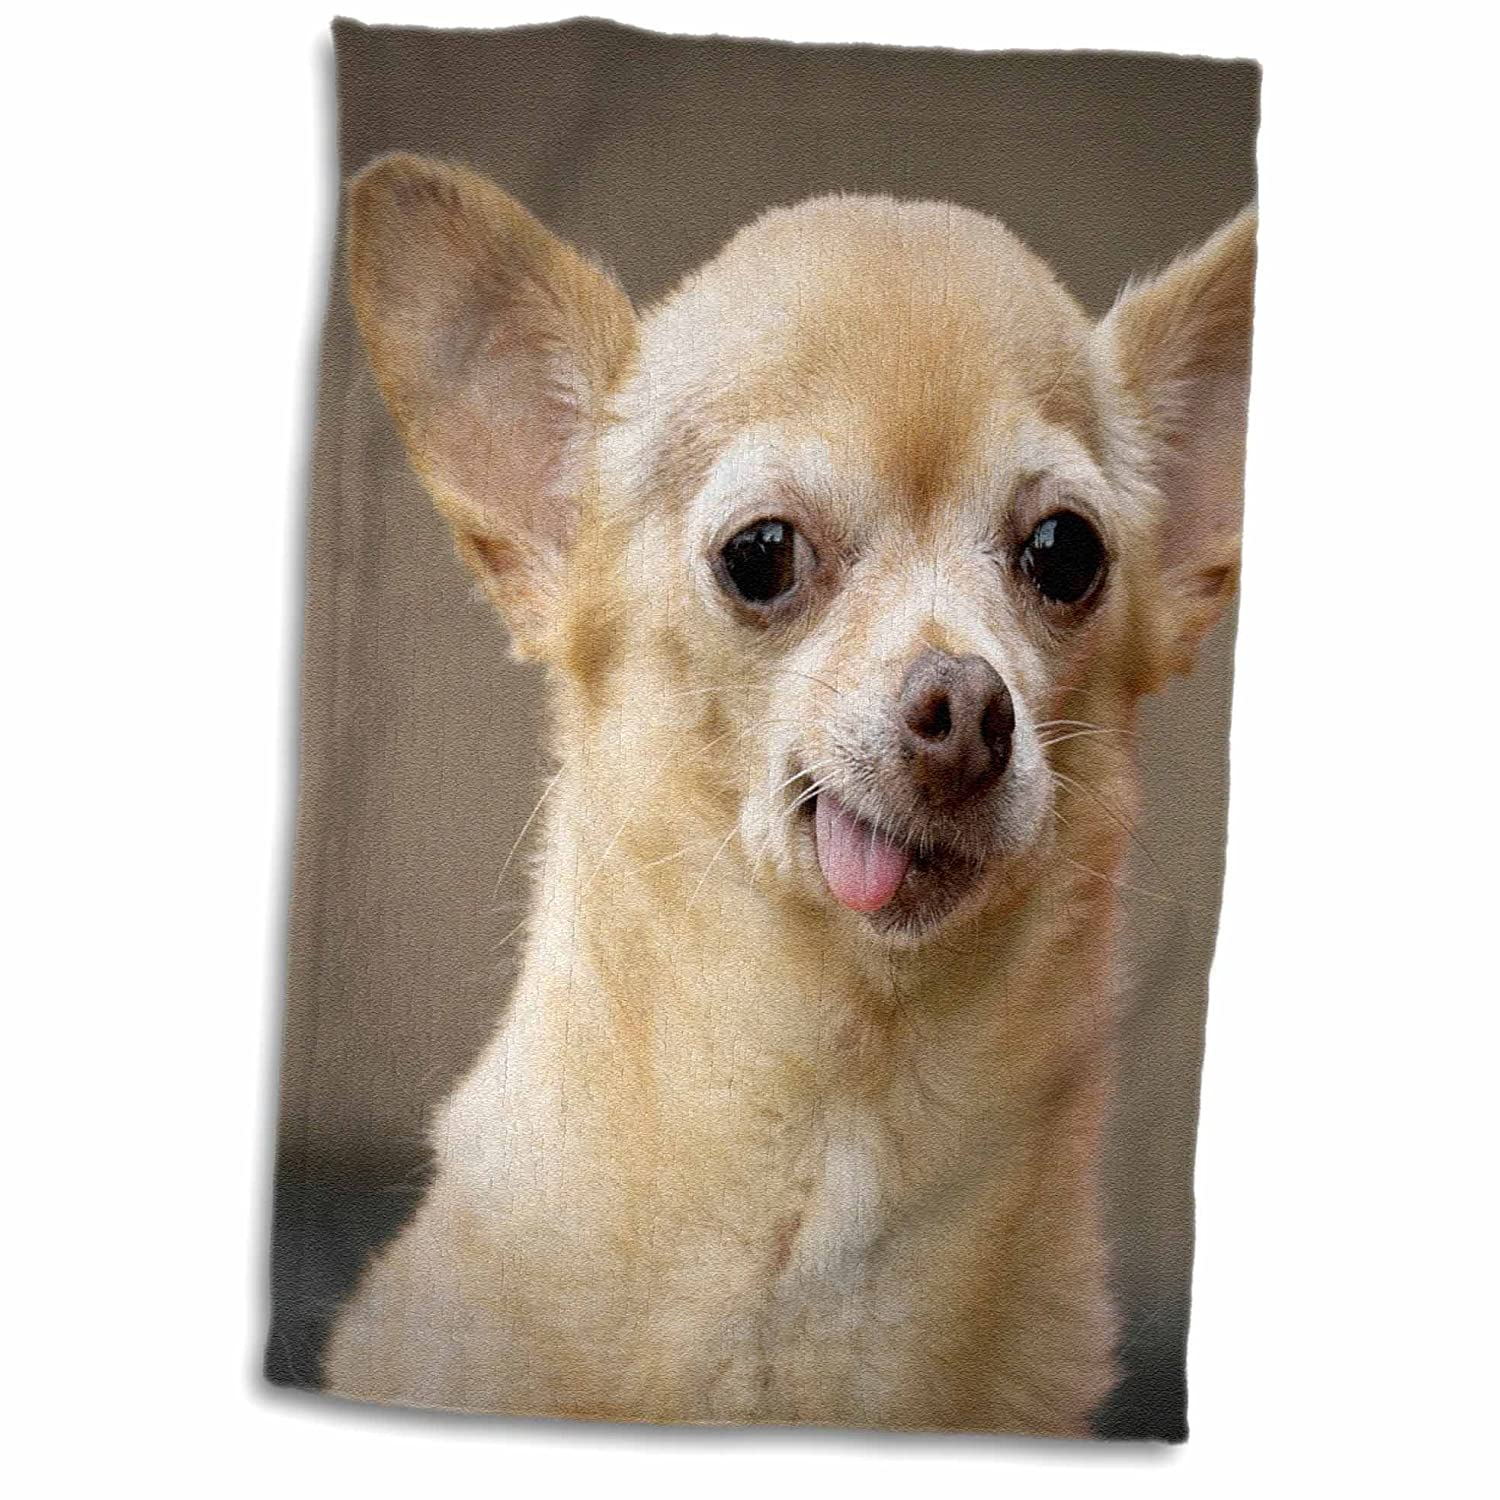 3D Rose Toothless Chihuahua Dog-Santa Fe-New Mexico-Us32 Jmr0502-Julien McRoberts Hand/Sports Towel 15 x 22